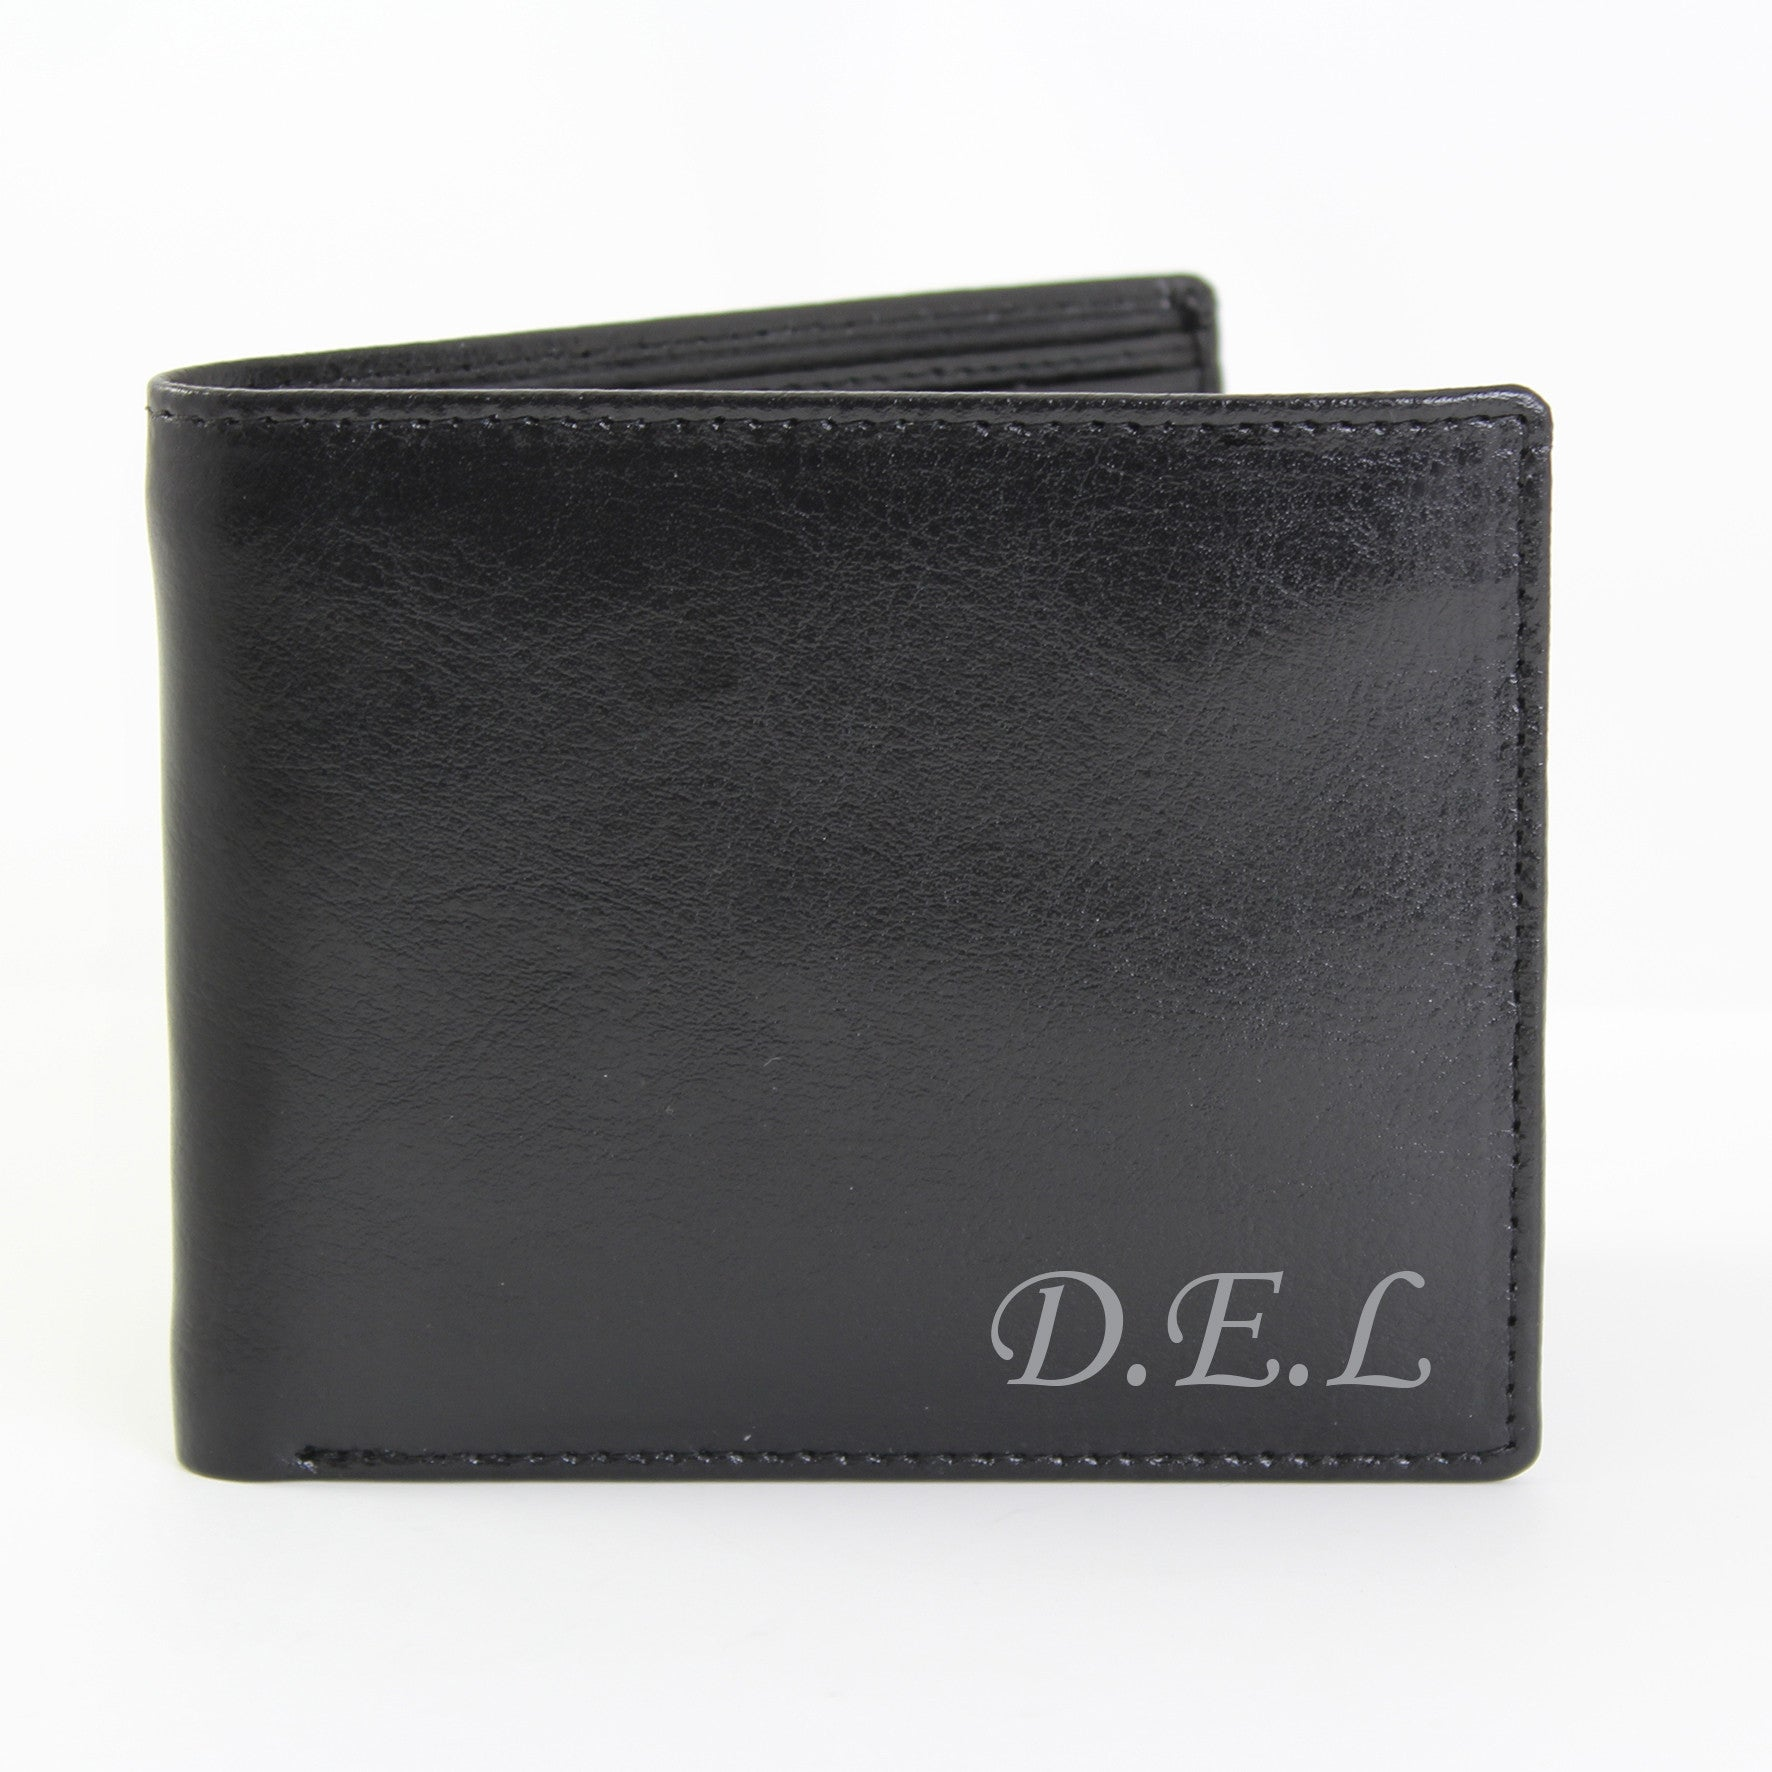 Personalised Leather Wallet with Script Font - Personalised Gift Solutions - 1